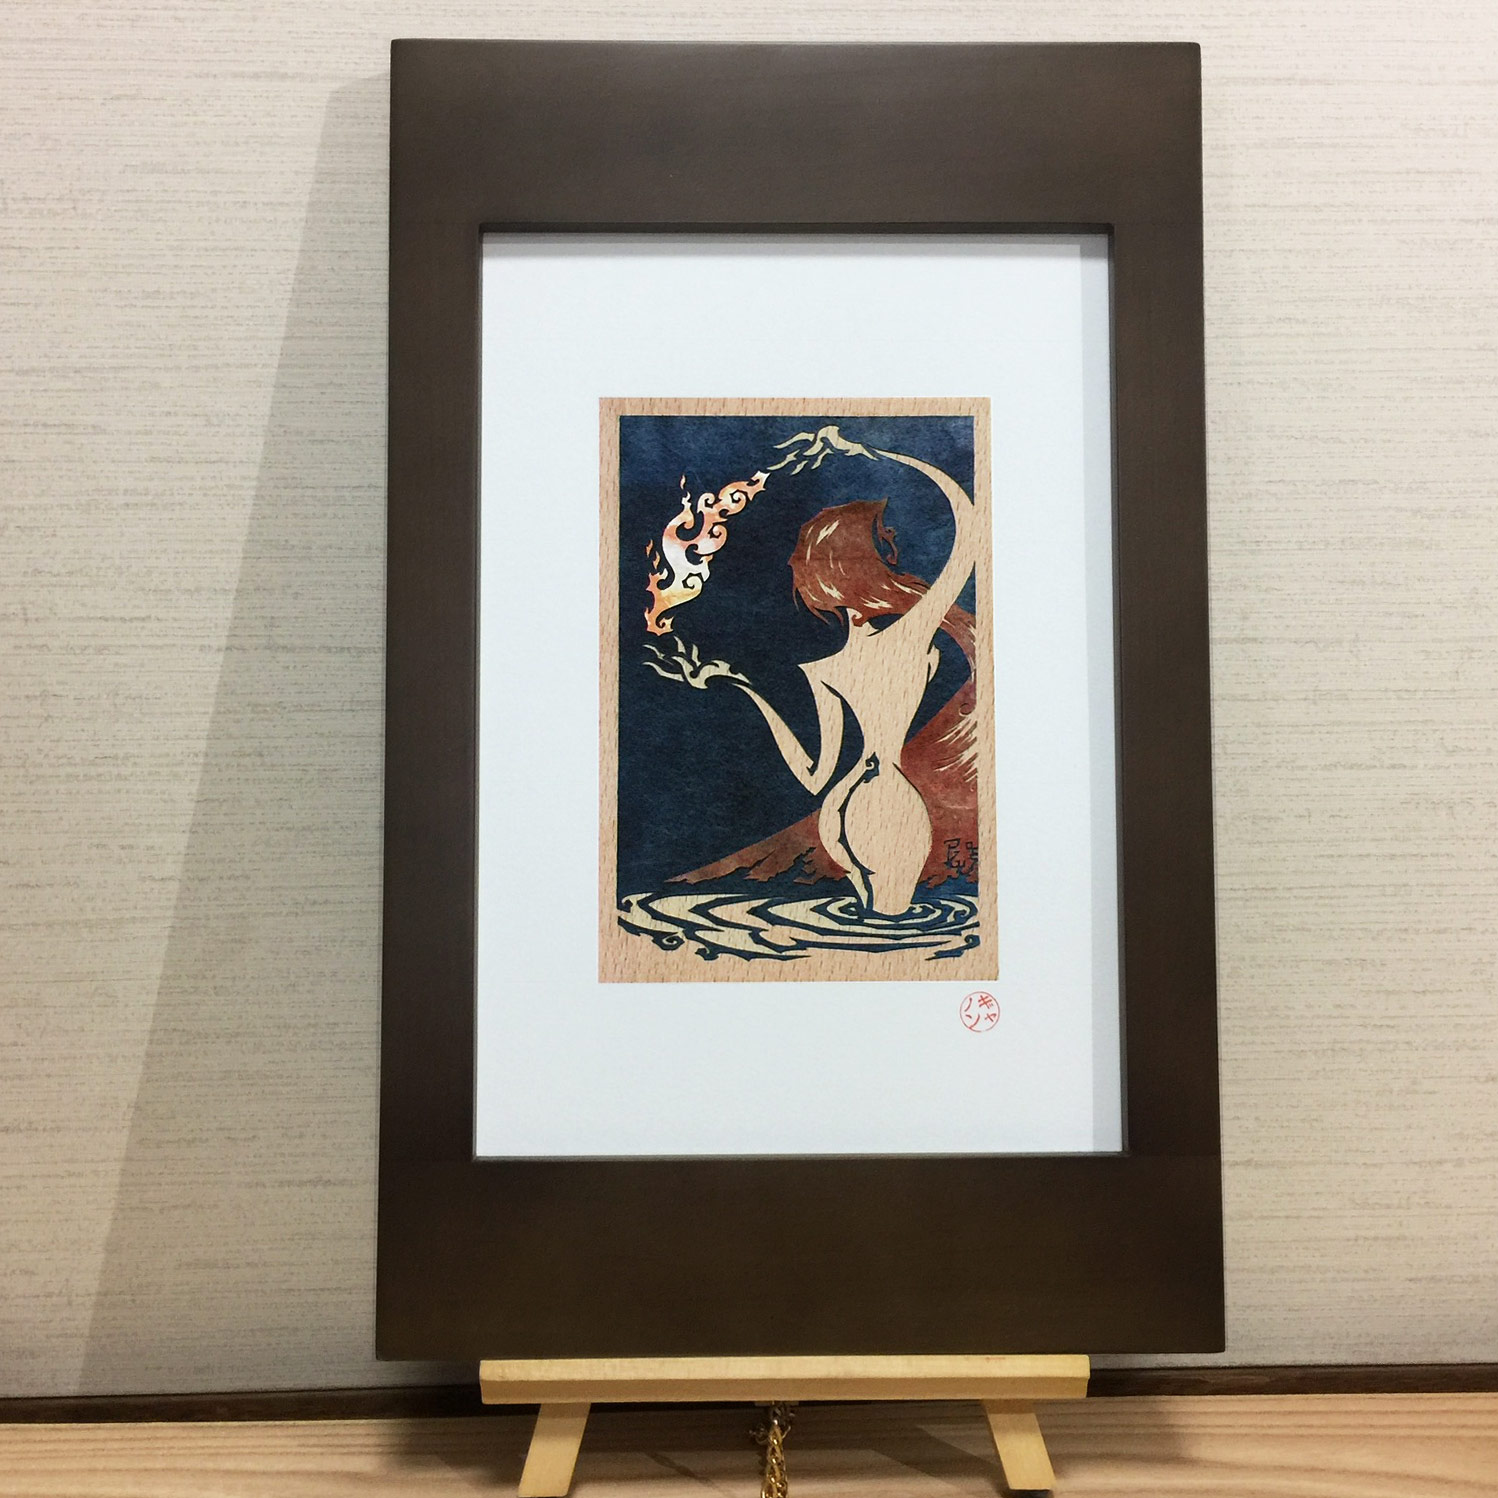 She Who Brings the Fire - open-edition giclée print